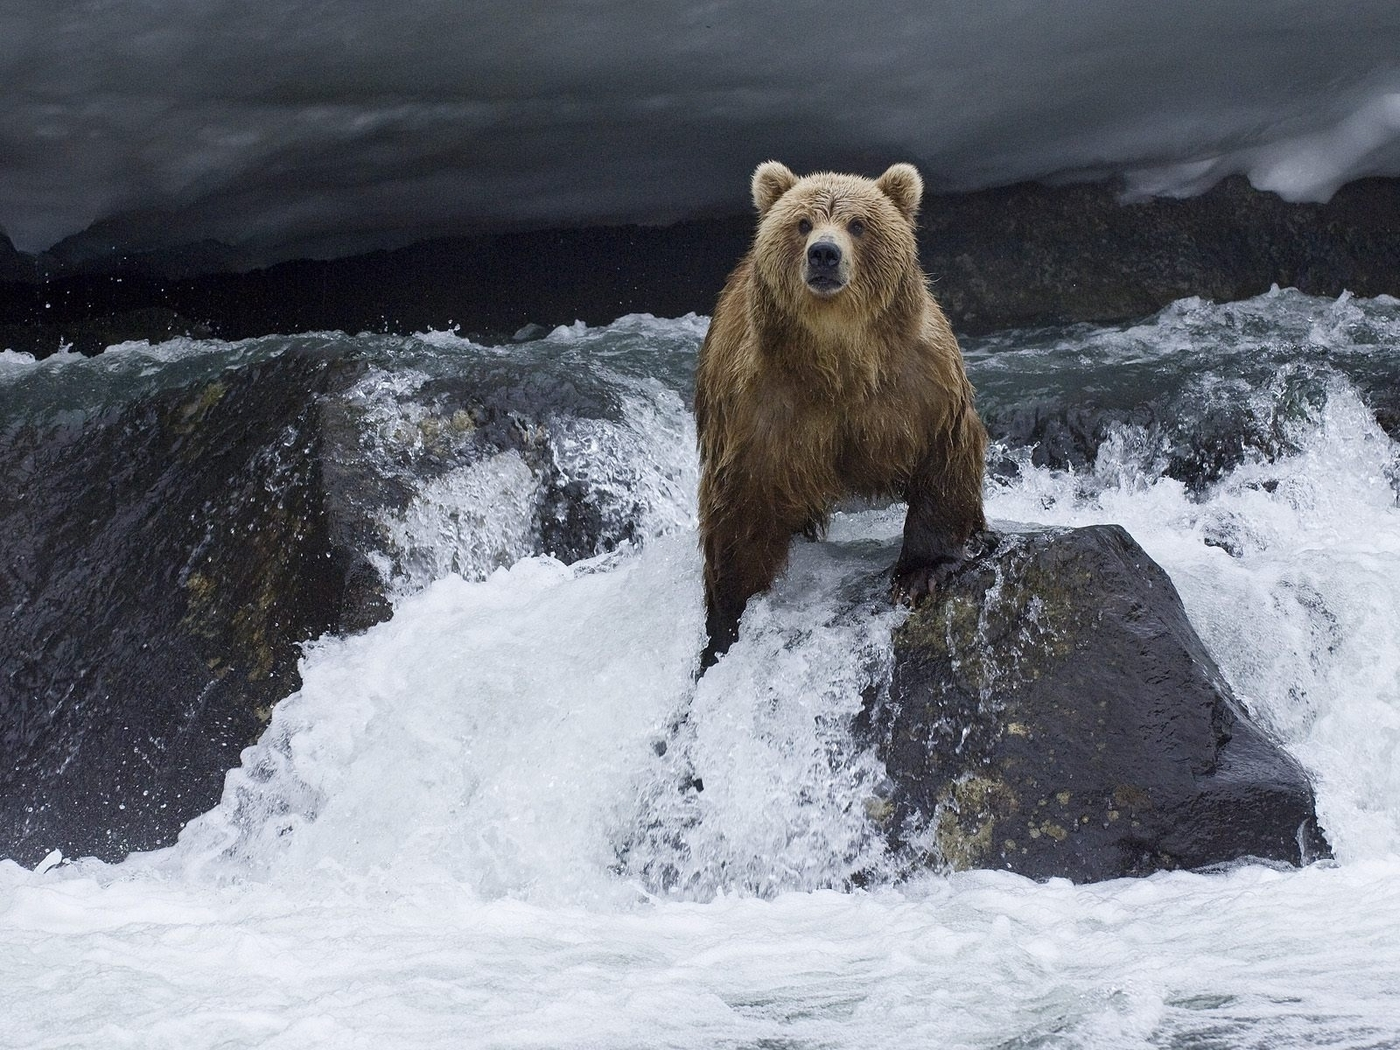 41098 download wallpaper Animals, Bears screensavers and pictures for free